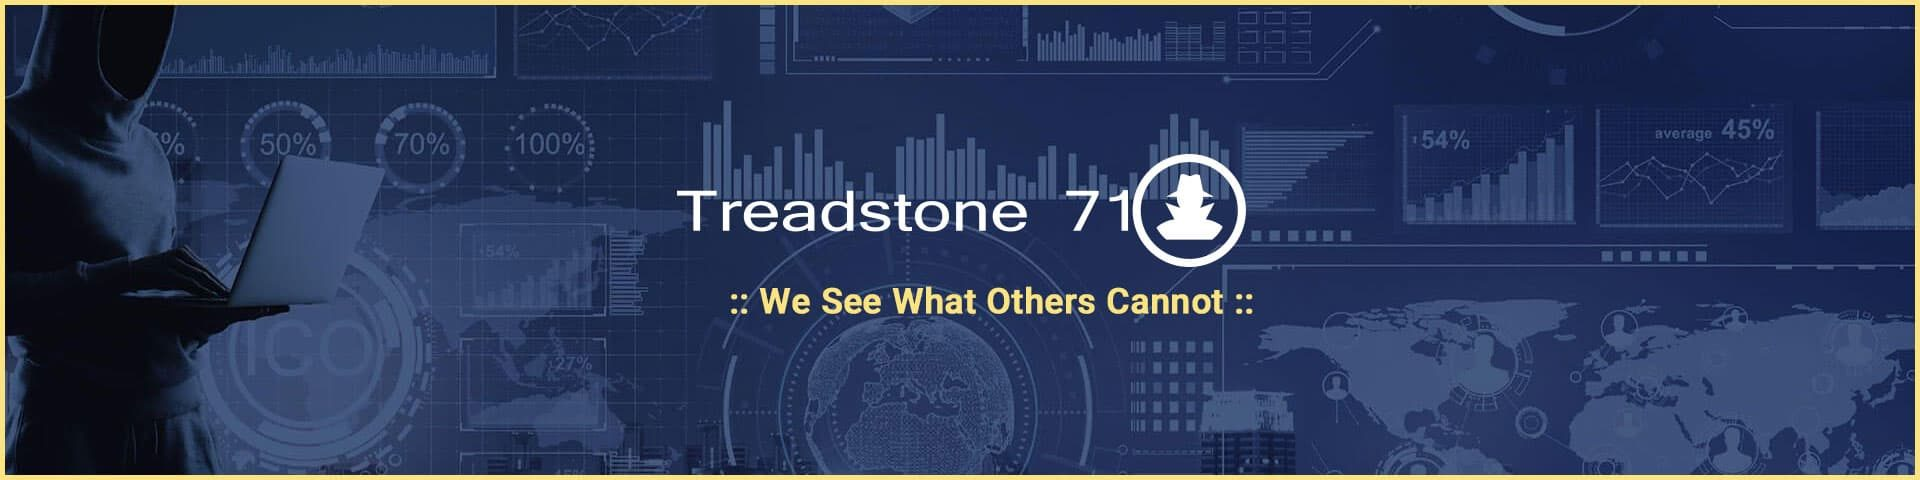 Proxies for those who need them - The Cyber Shafarat - Treadstone 71